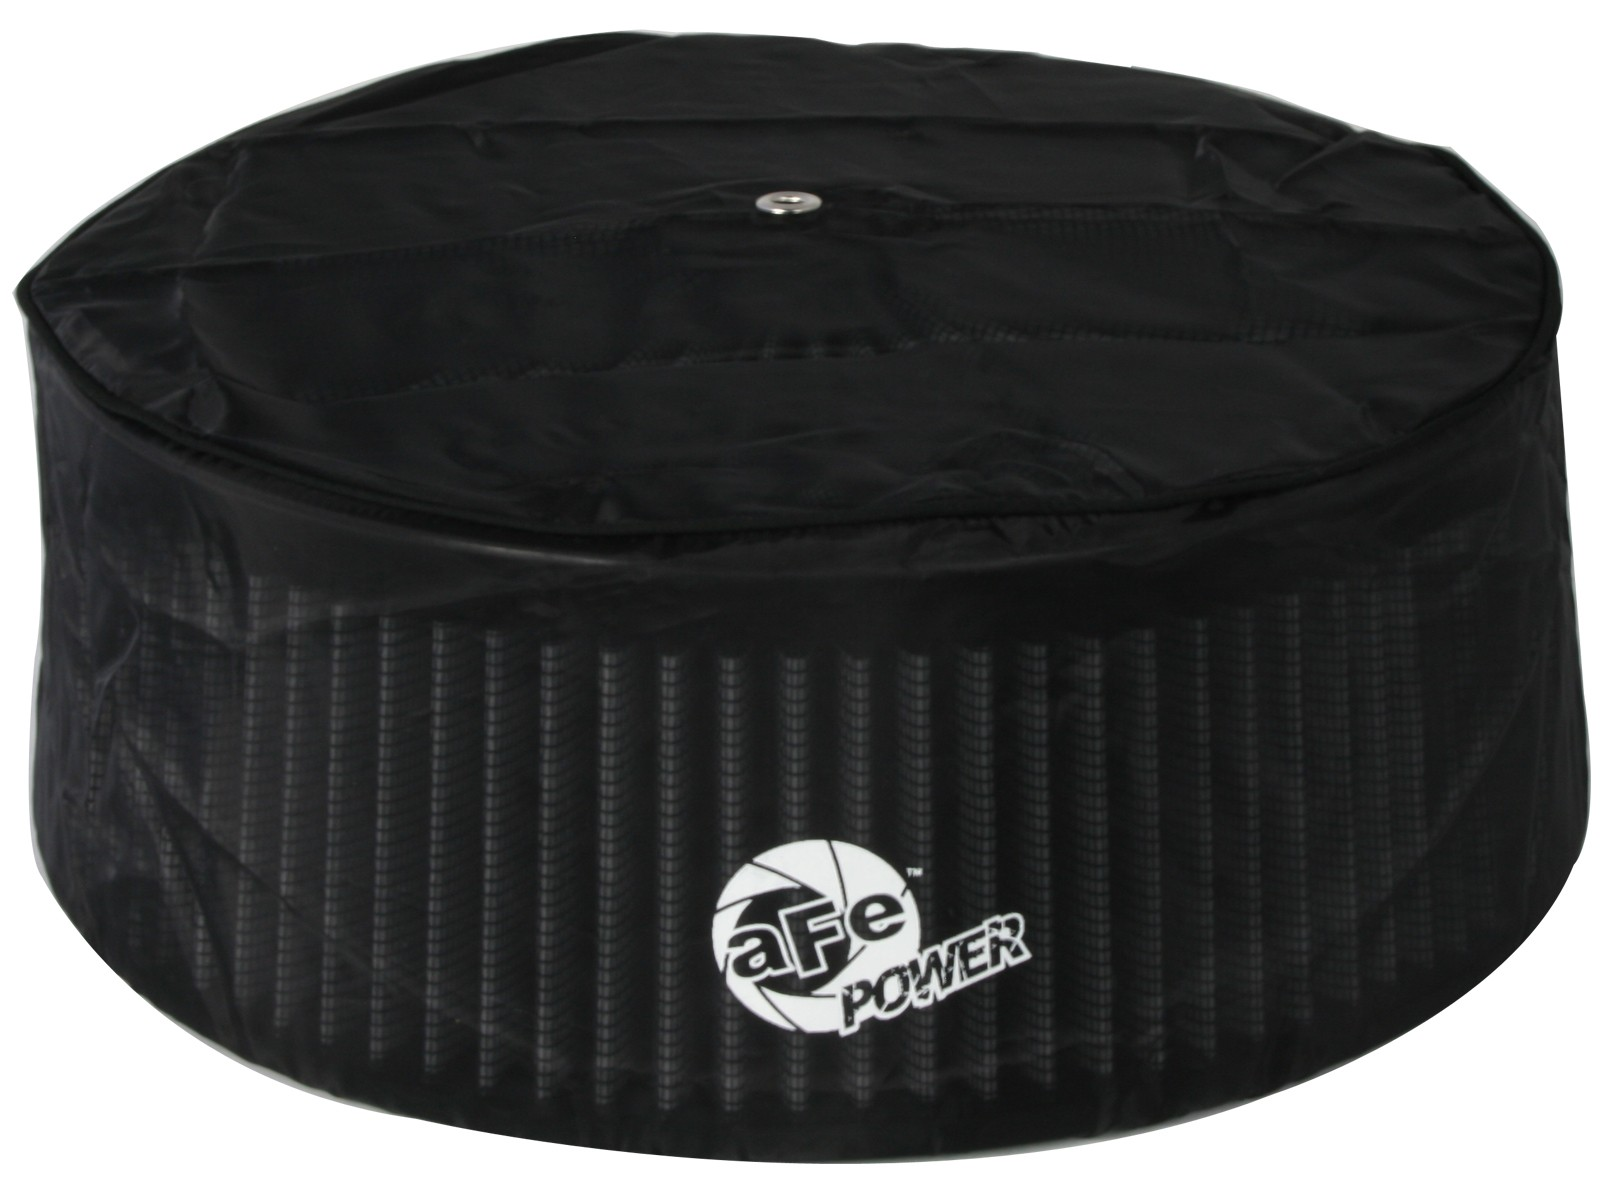 aFe POWER 28-10193 Magnum SHIELD Pre-Filters